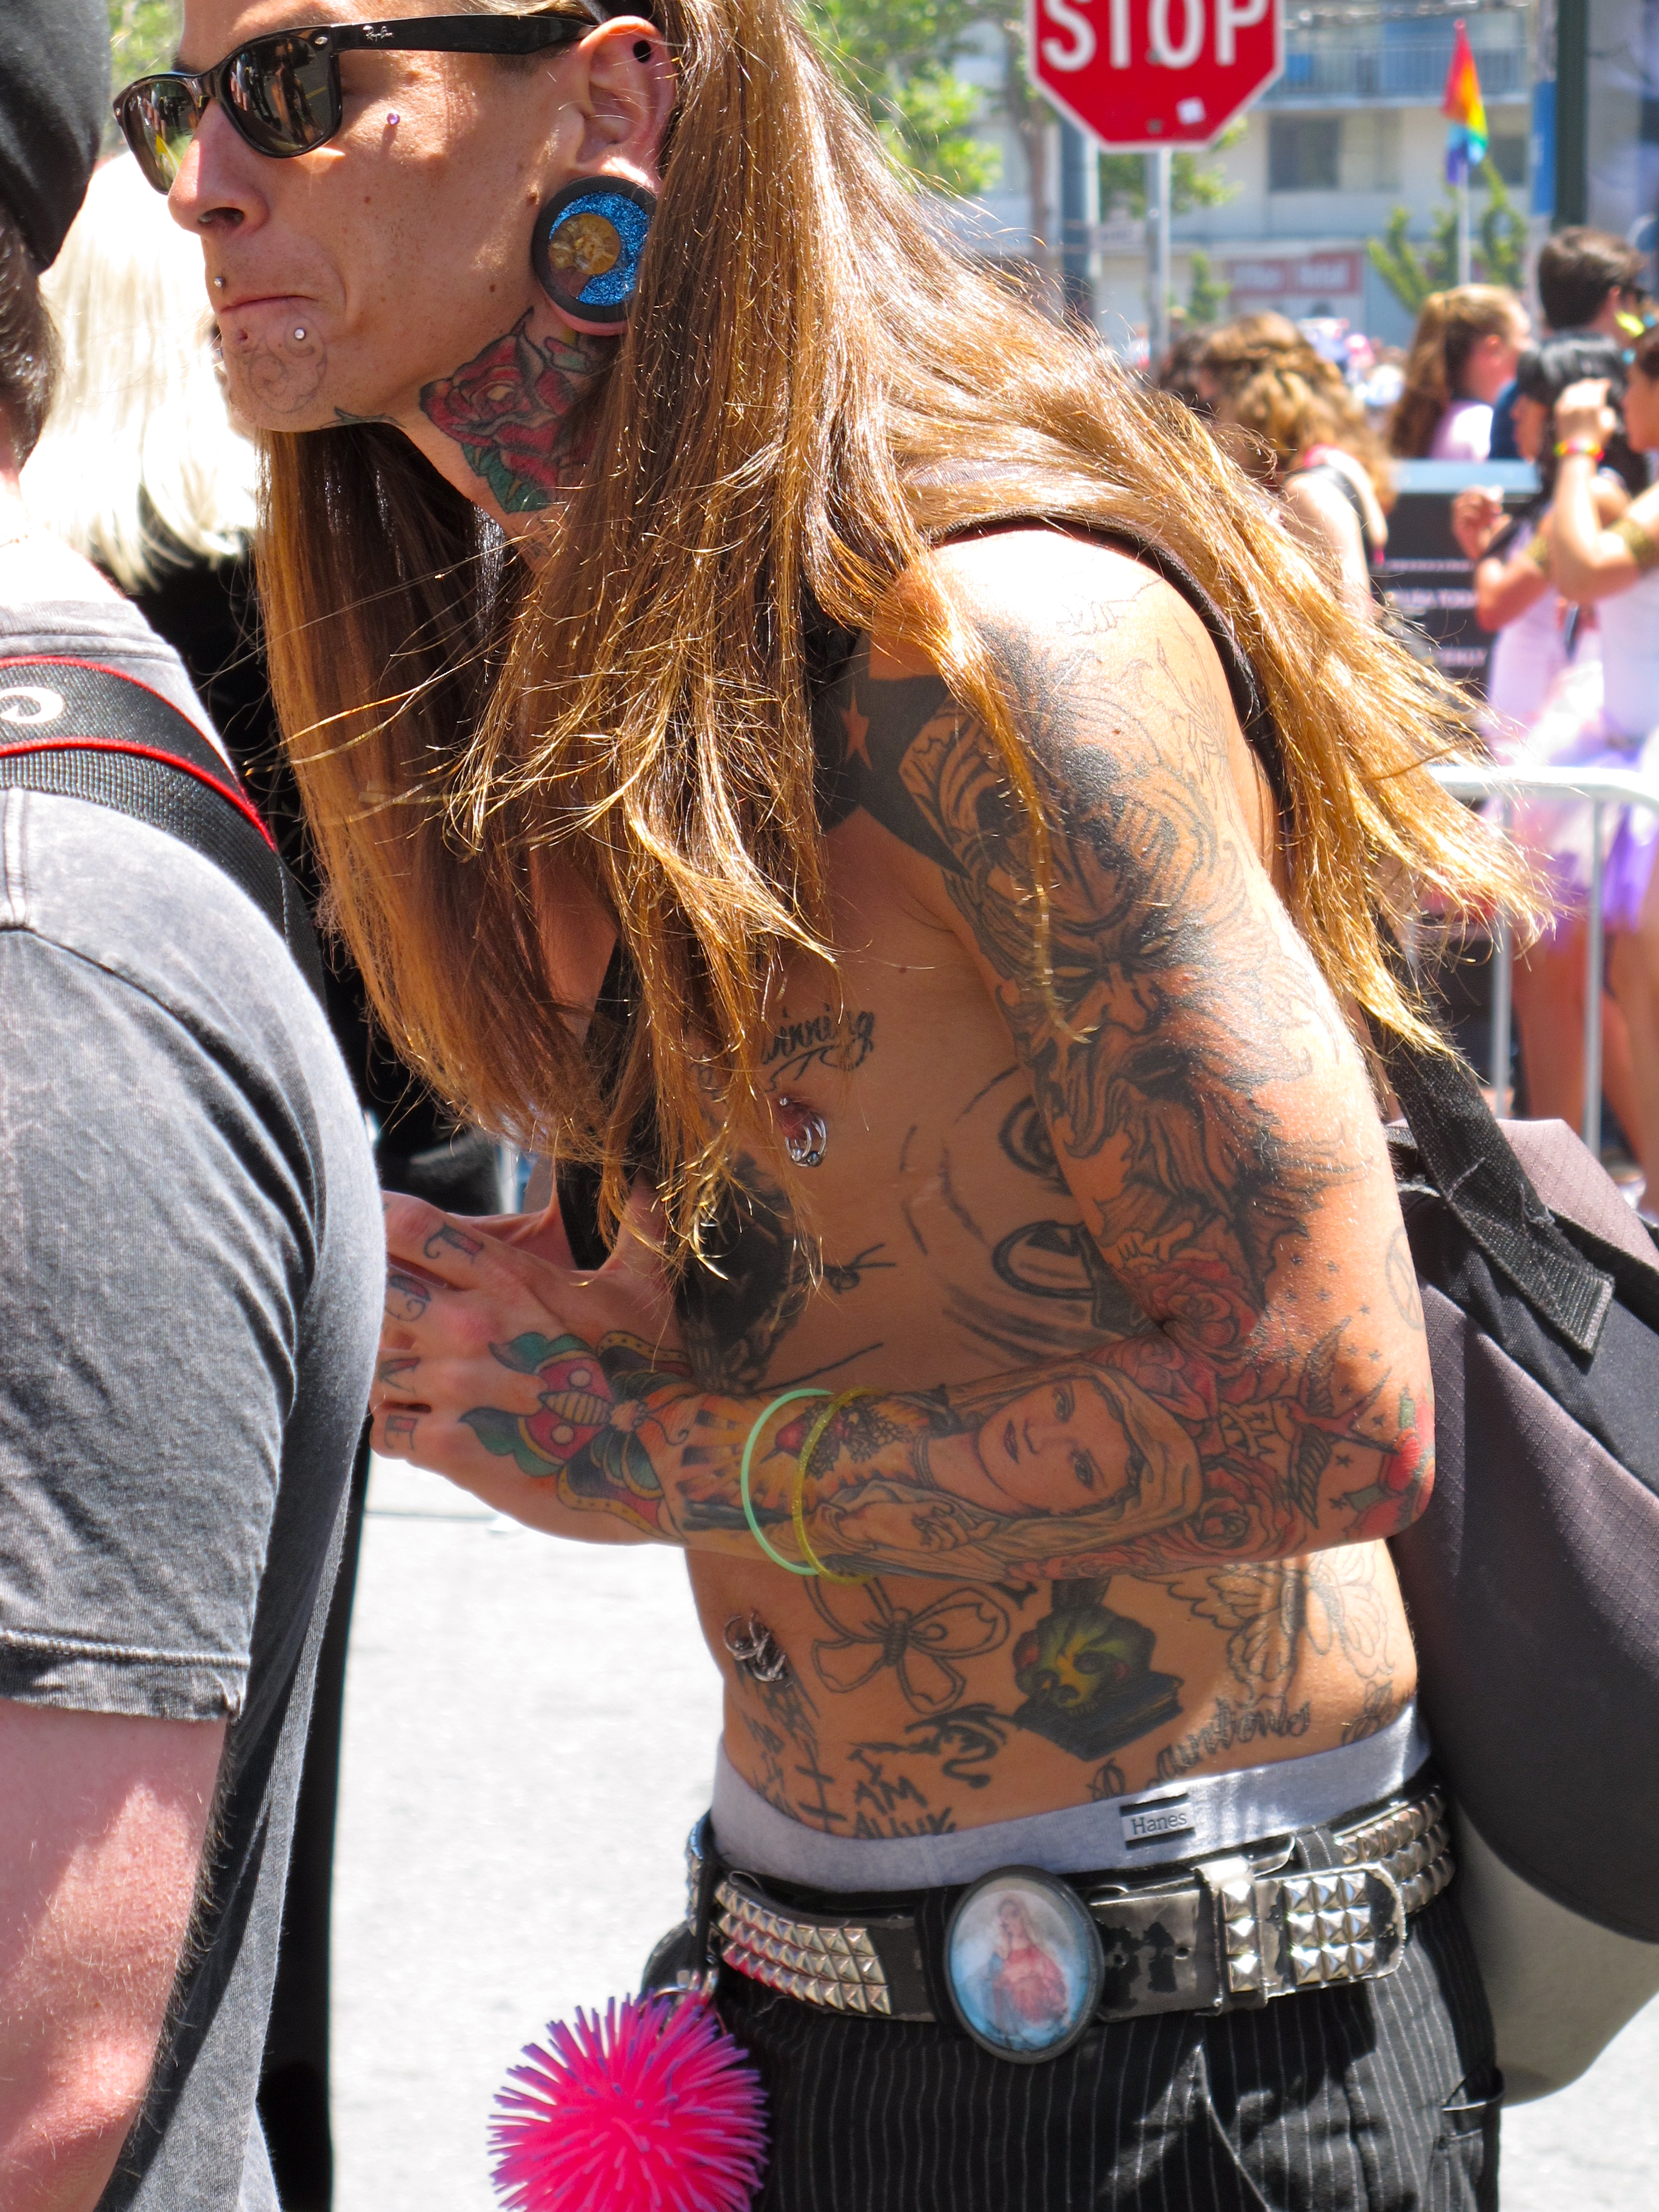 history of piercings and tattoos Piercings and tattoos are body decorations that go back to ancient times body piercing involves making a hole in the skin so that you can insert jewelry this is often in the earlobe, but can be in other parts of the body.